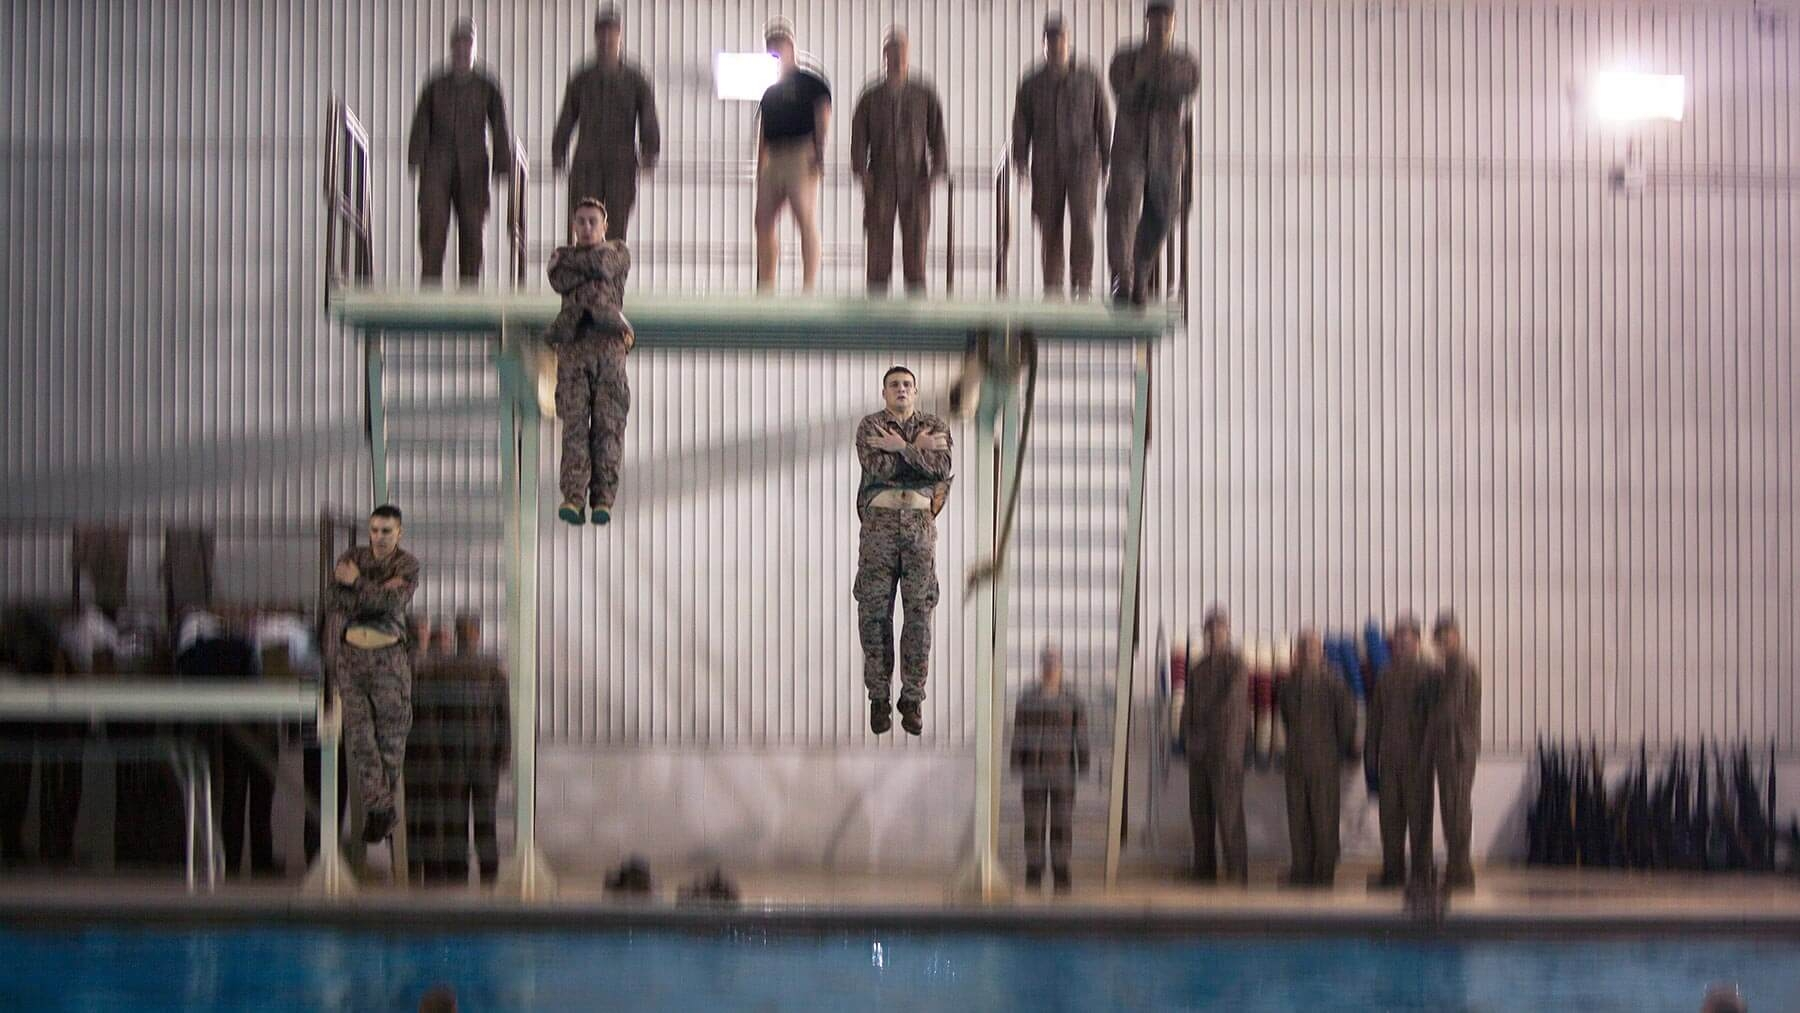 Every recruit must pass basic water survival training.